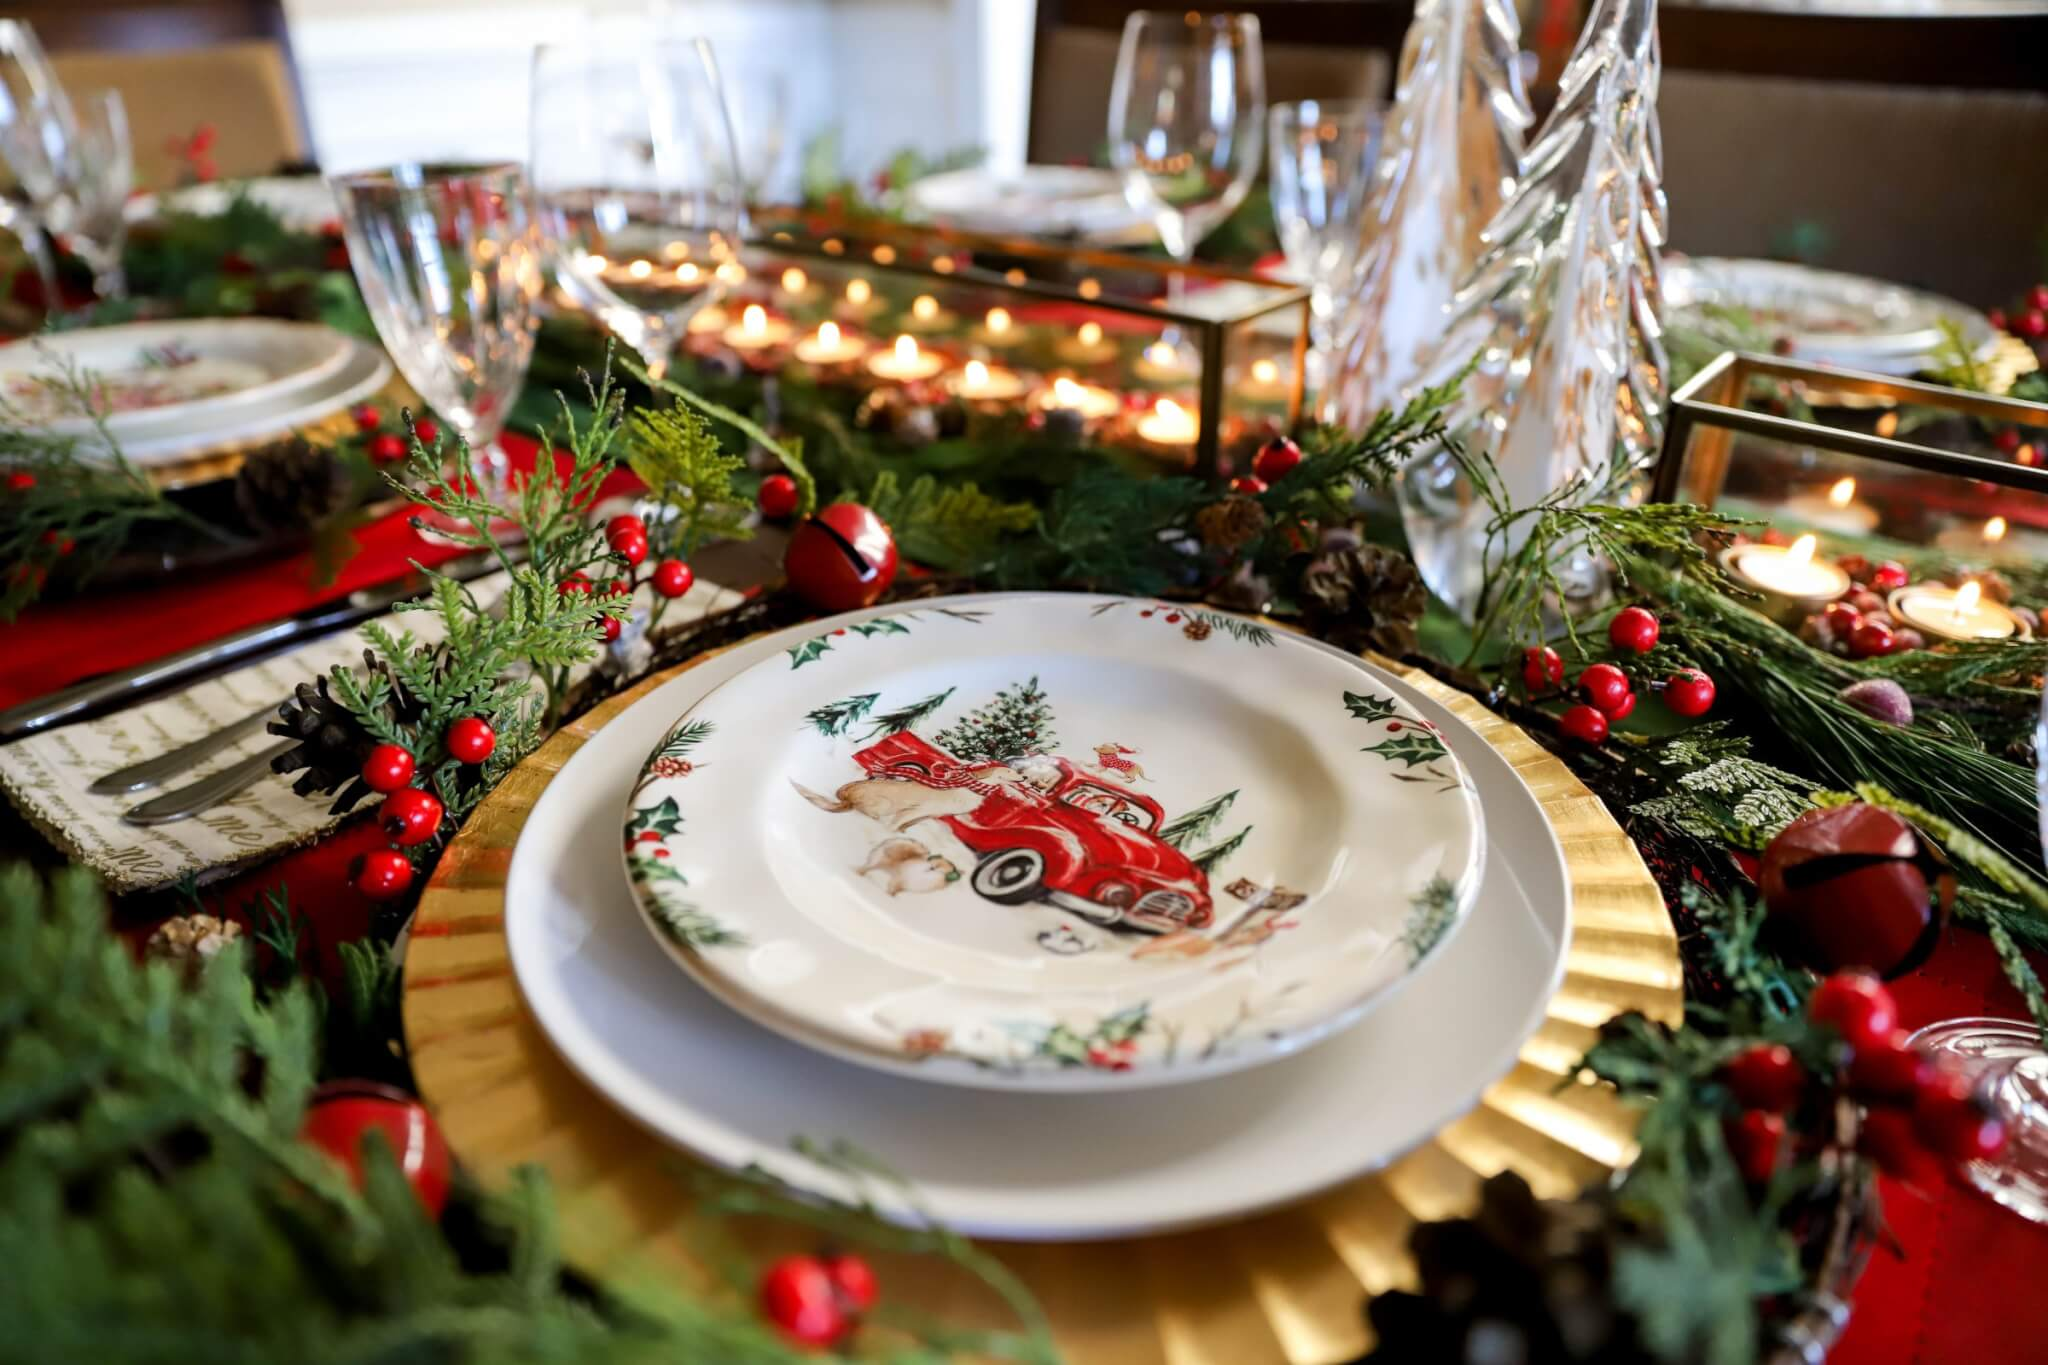 How to set the table, table setting ideas, ideas for holiday table settings, holiday table setting tips, table setting diagram, basic table setting, how to set the table for the holidays, tablescape, tablescape for the holidays, table setting for Christmas, how to decorate the table for Christmas, Christmas table decorations, proper table setting, Christmas table decorating ideas, Christmas table centerpiece, Christmas tablescape ideas